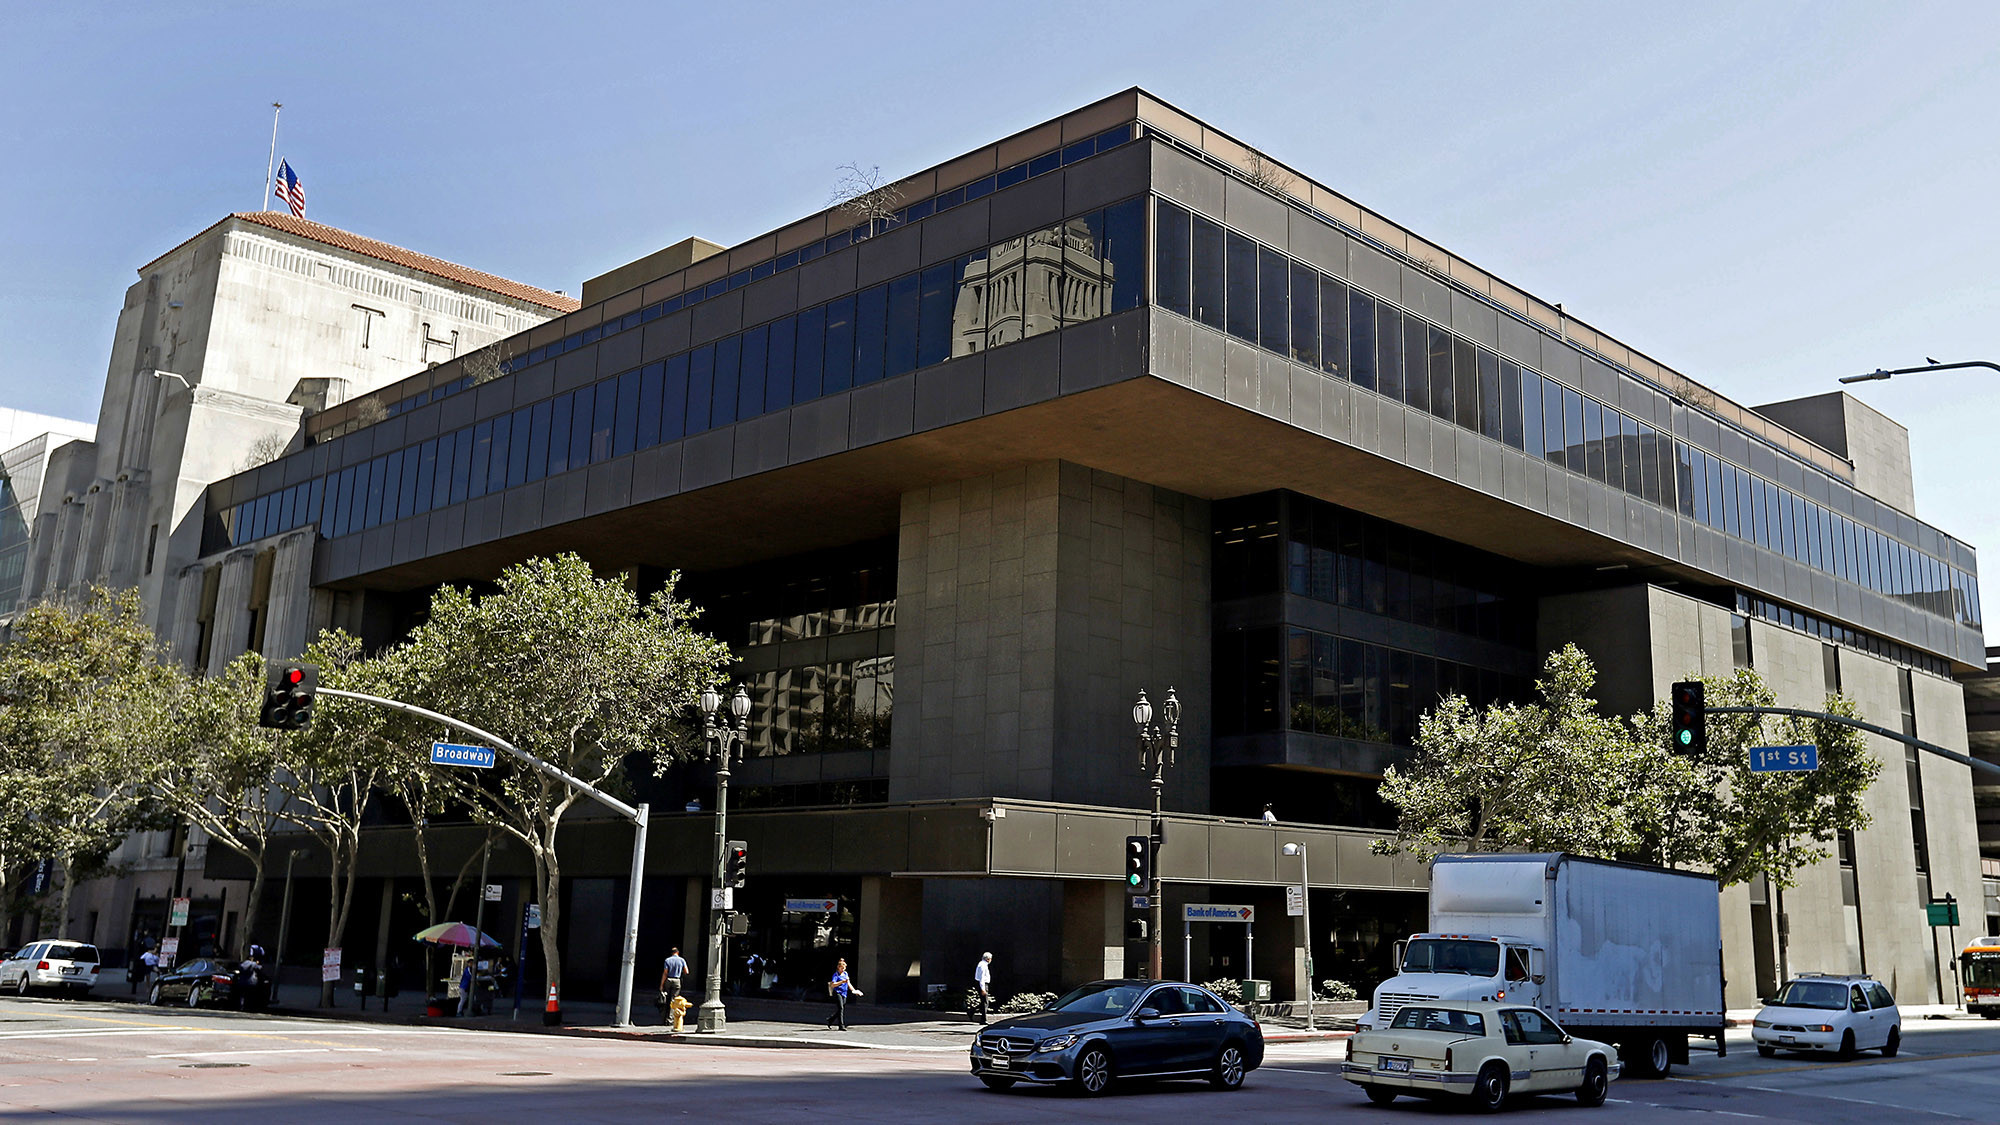 Times building designed by William Pereira not a monument, council committee says